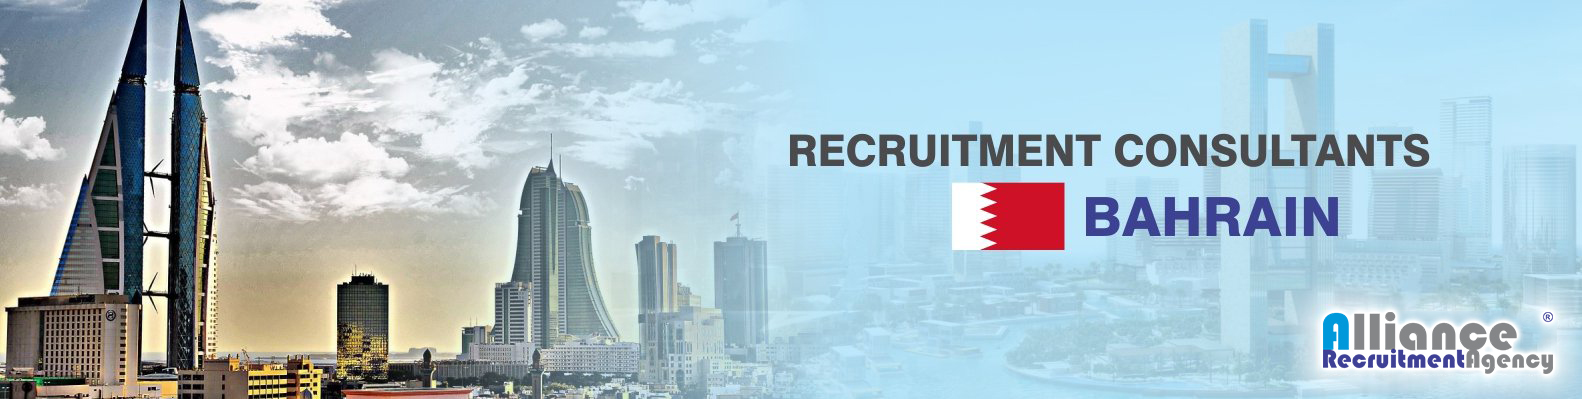 bahrain recruitment agency